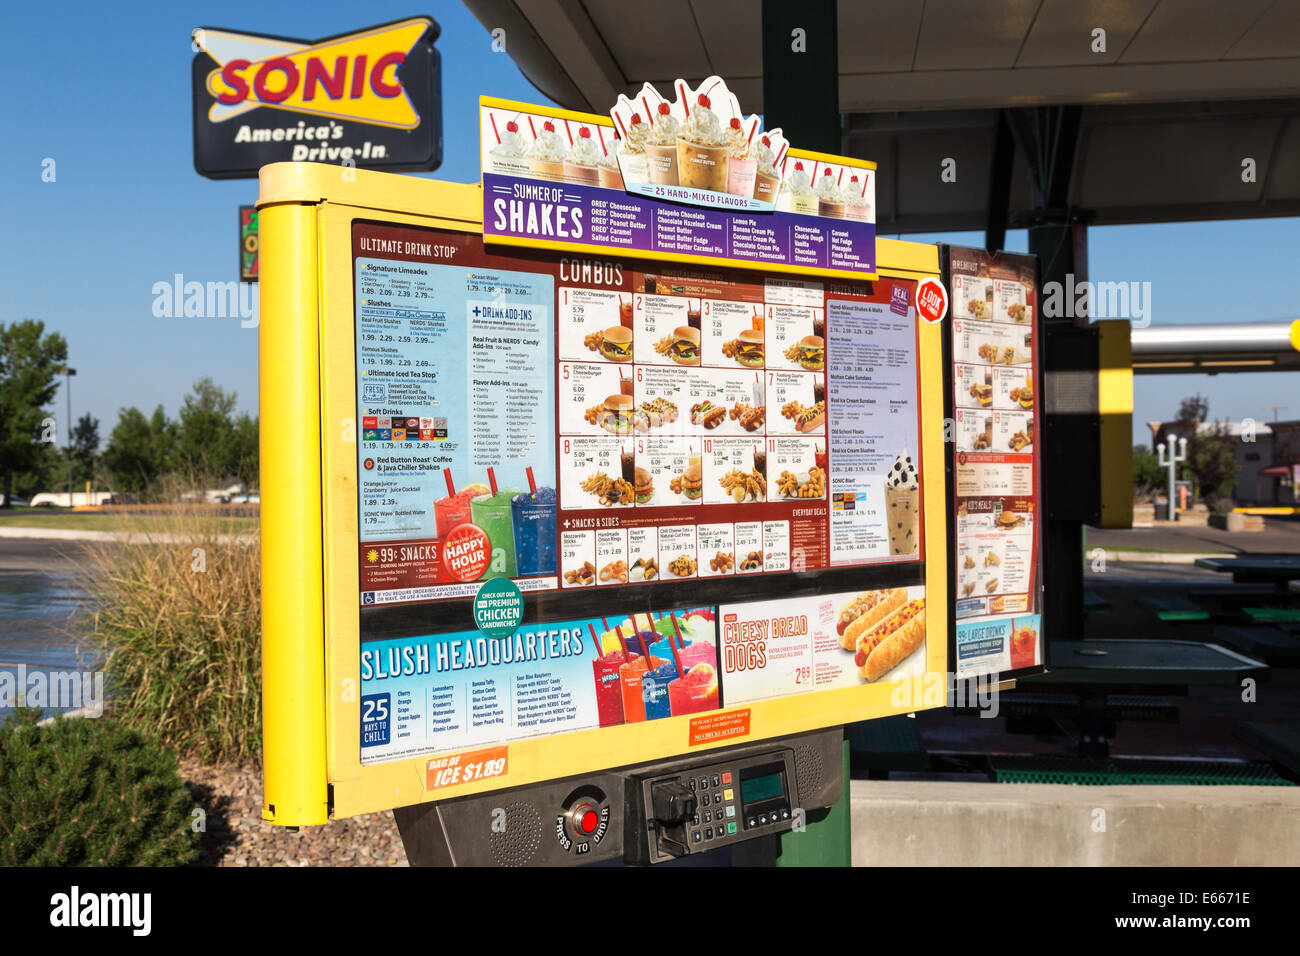 Sonic Sign Stock Photos & Sonic Sign Stock Images - Alamy